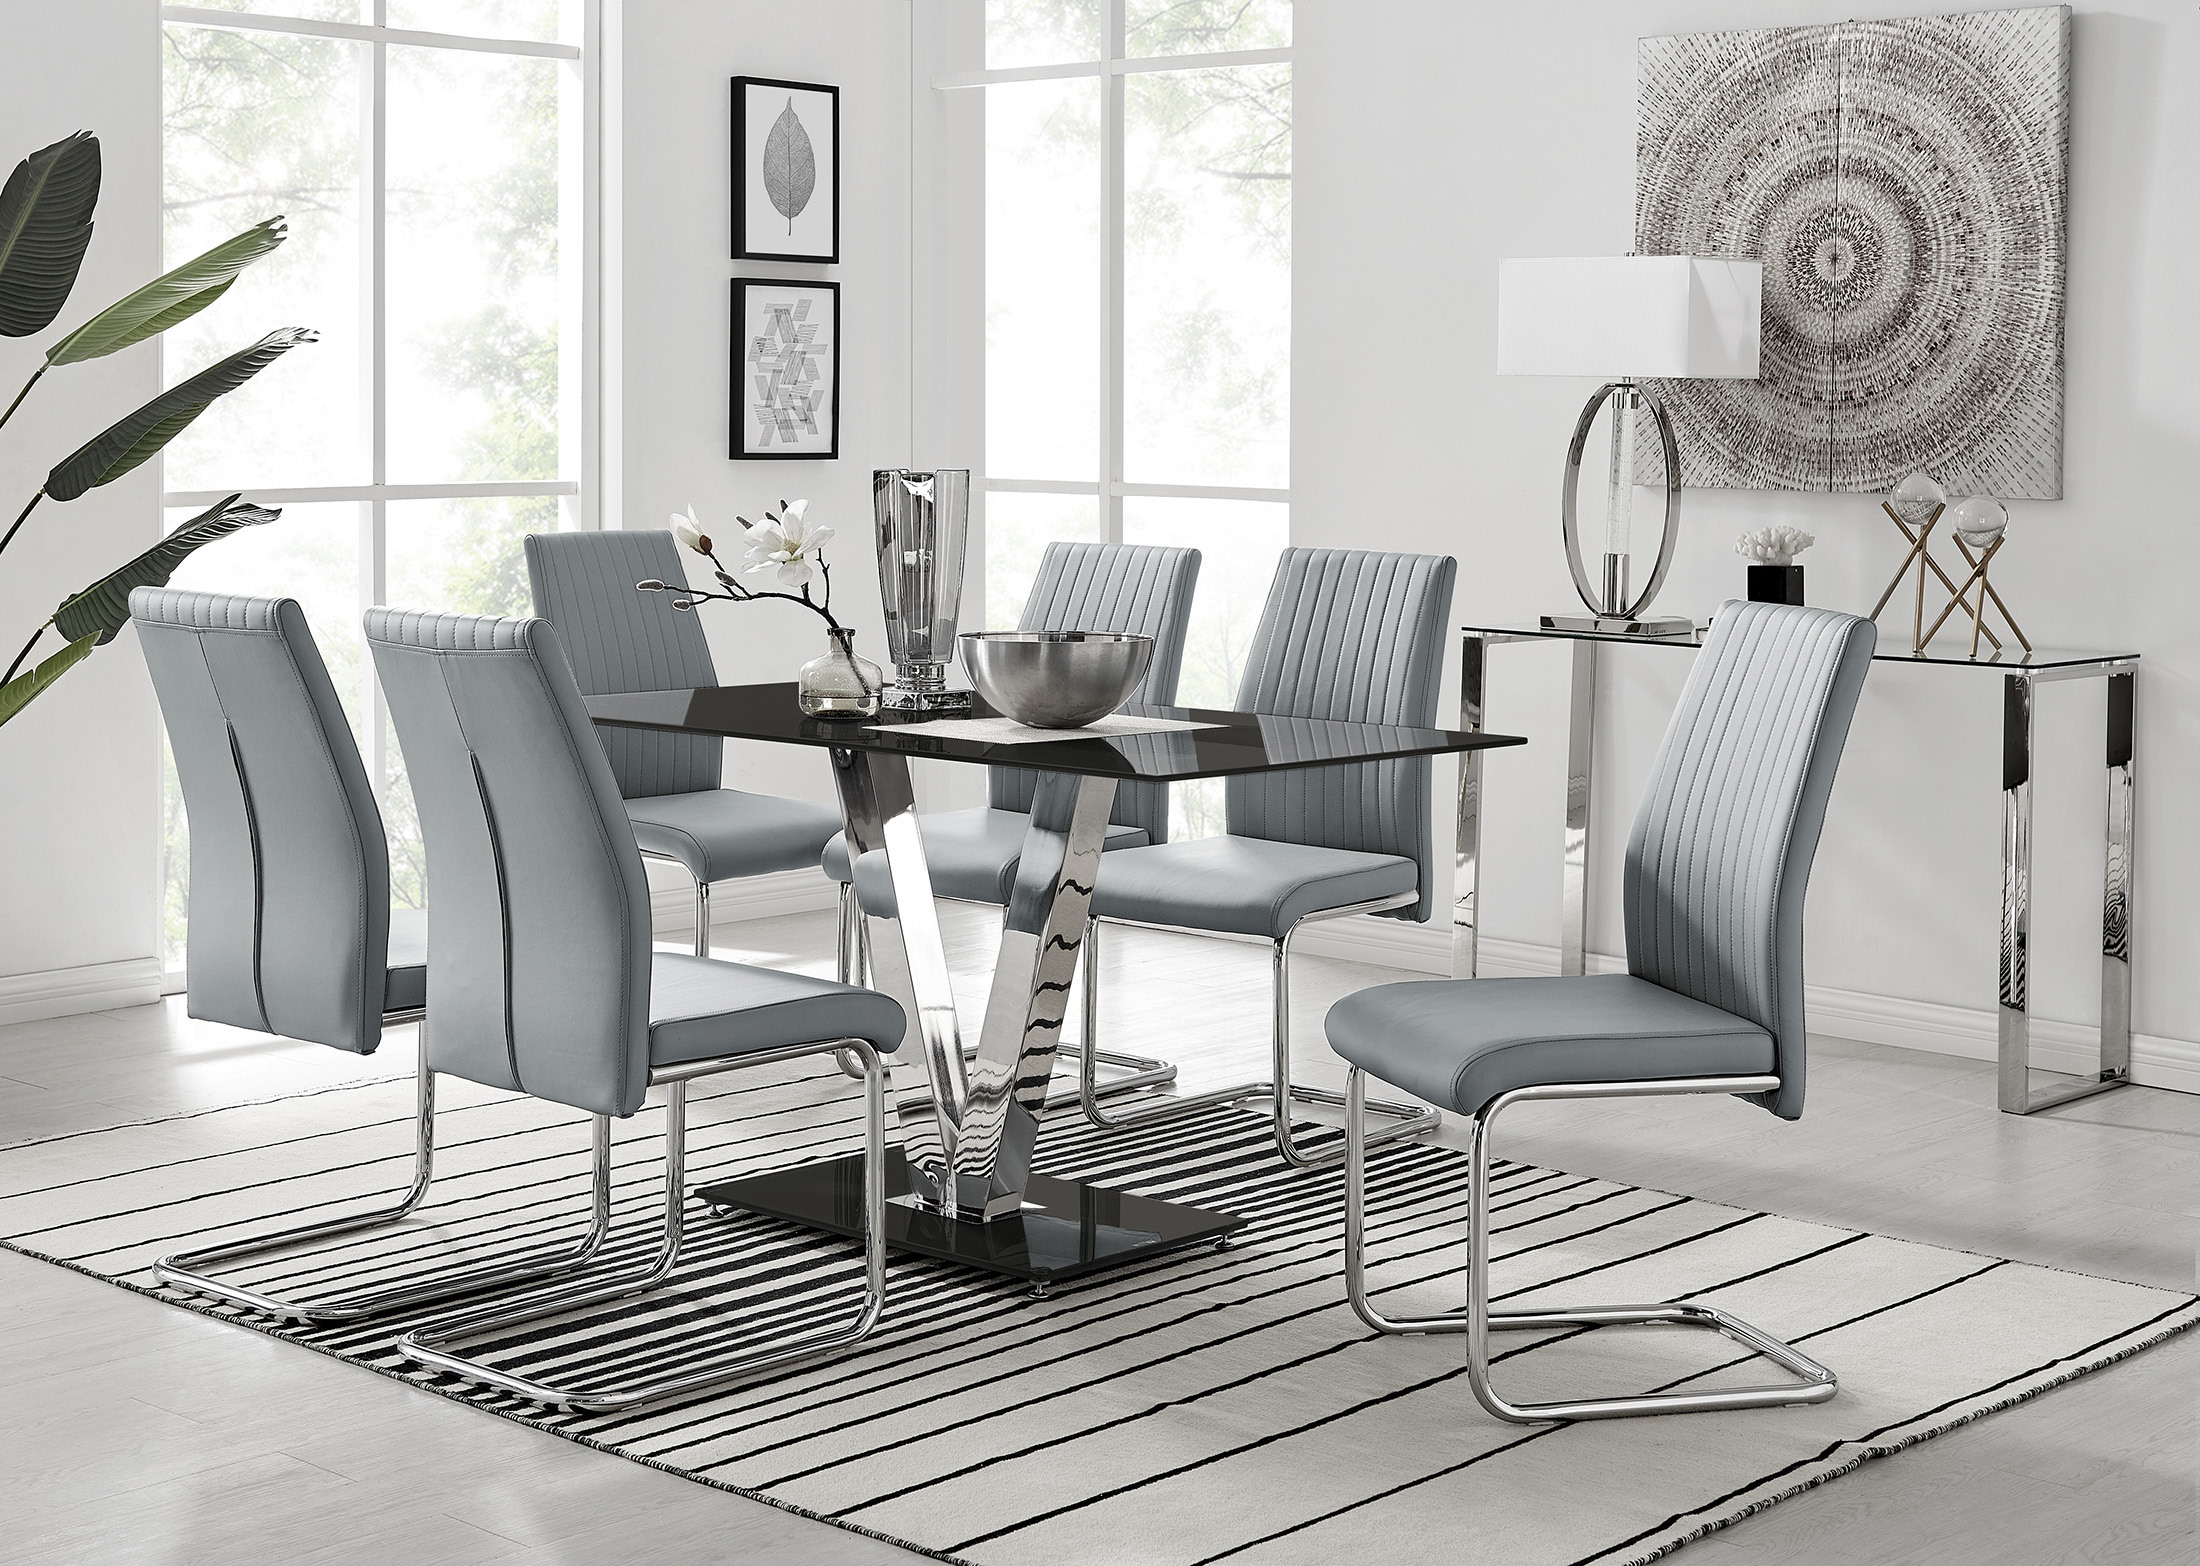 Florini Black Glass And Chrome Dining, Black Dining Table Chairs Set Of 6